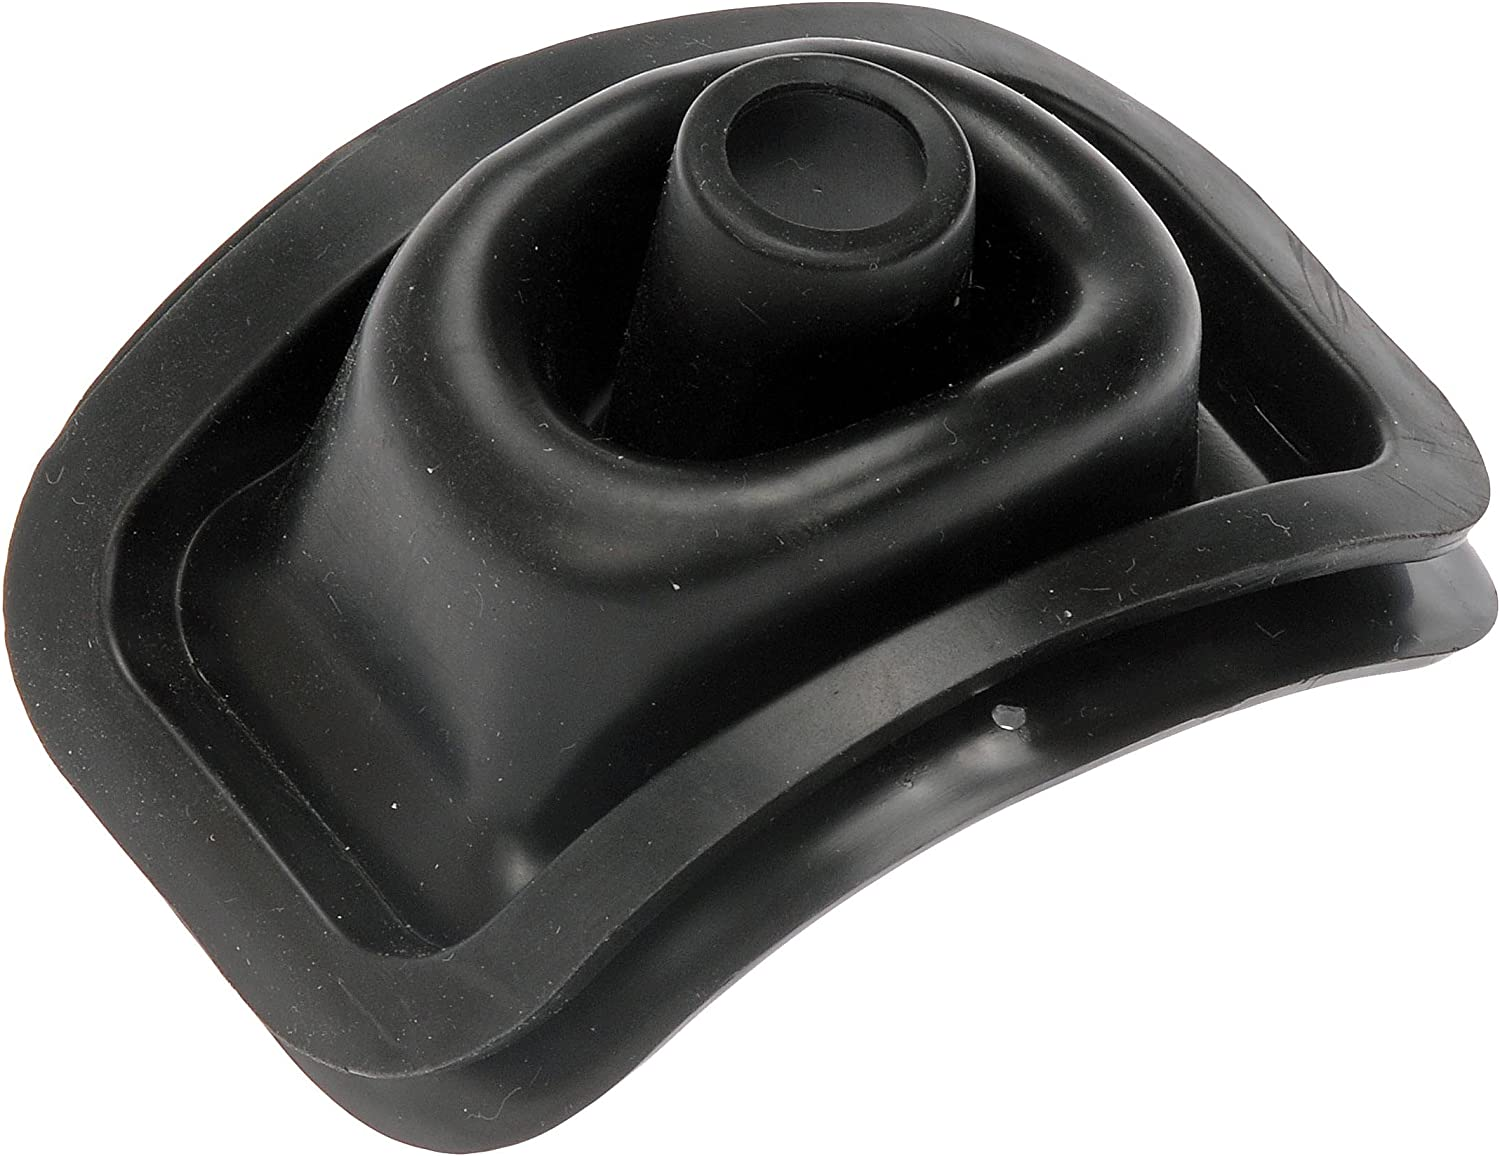 Black Dorman 47106CD Shift Lever Boot Replacement for Select Models